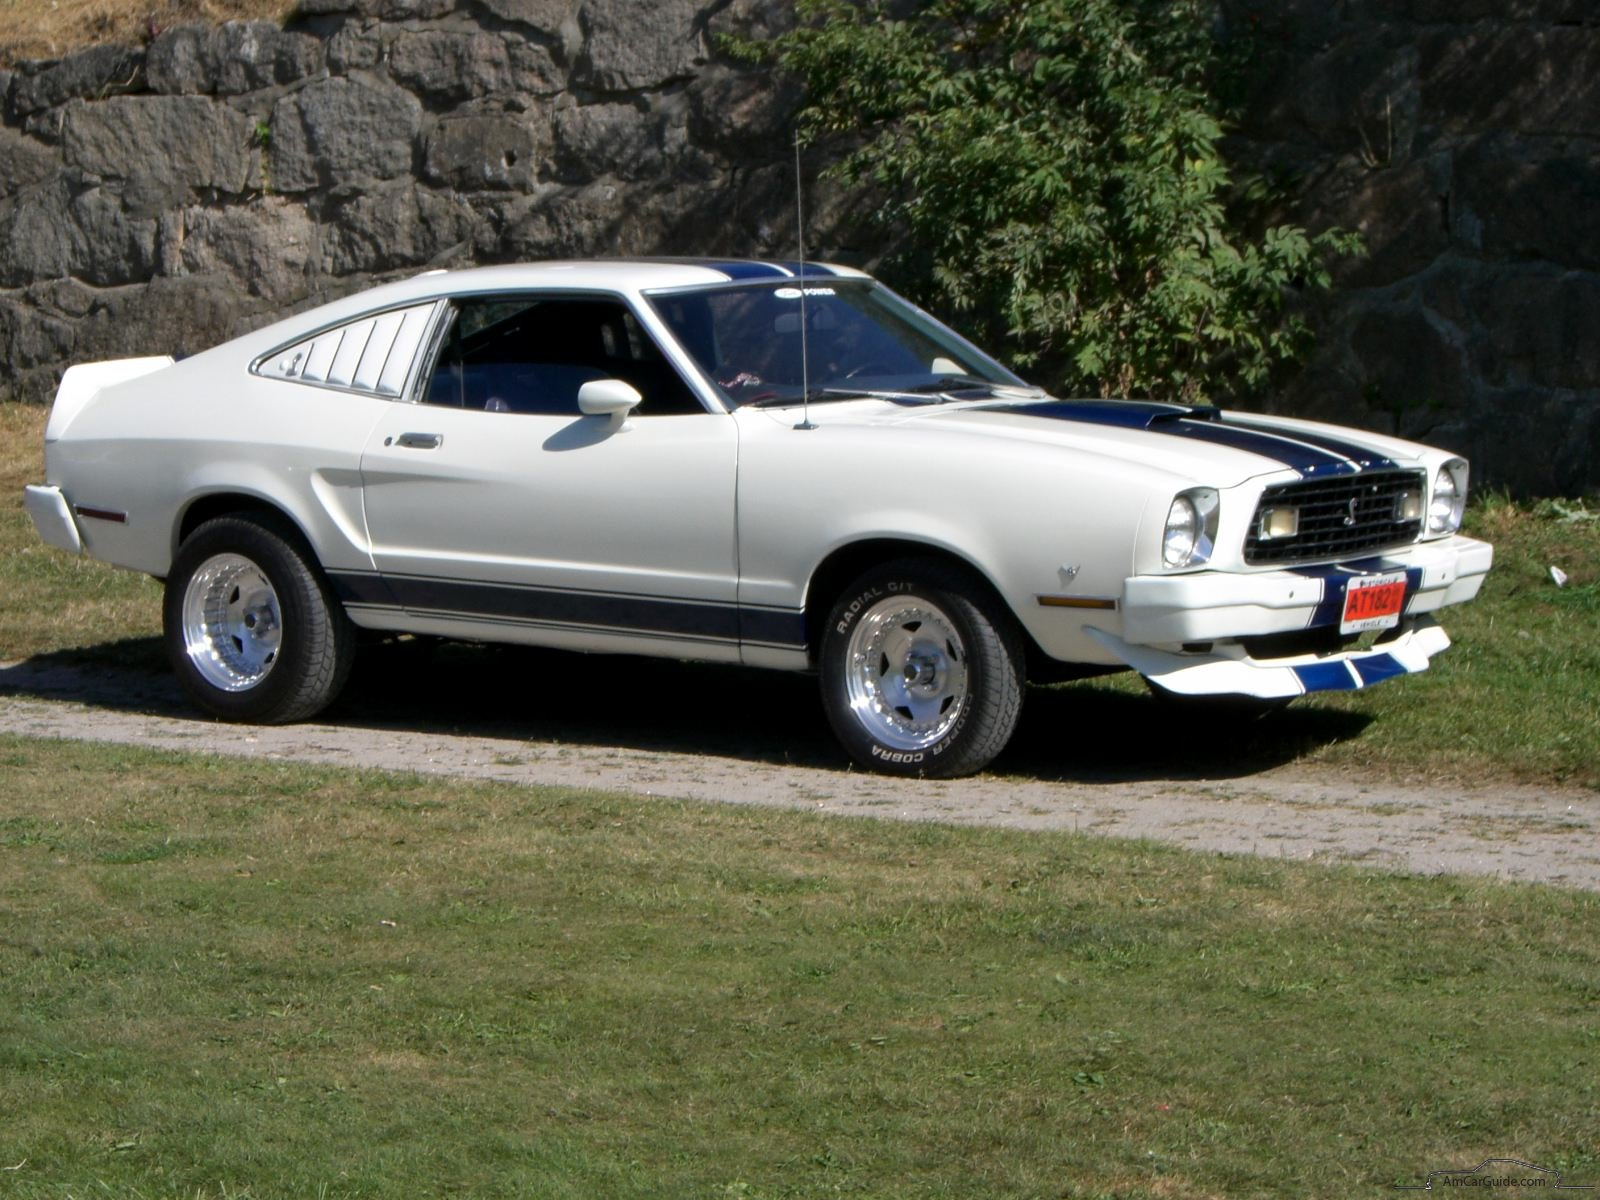 Fotos 1974 ford mustang 2nd gen 74 mustang for sale - 1976 Ford Mustang